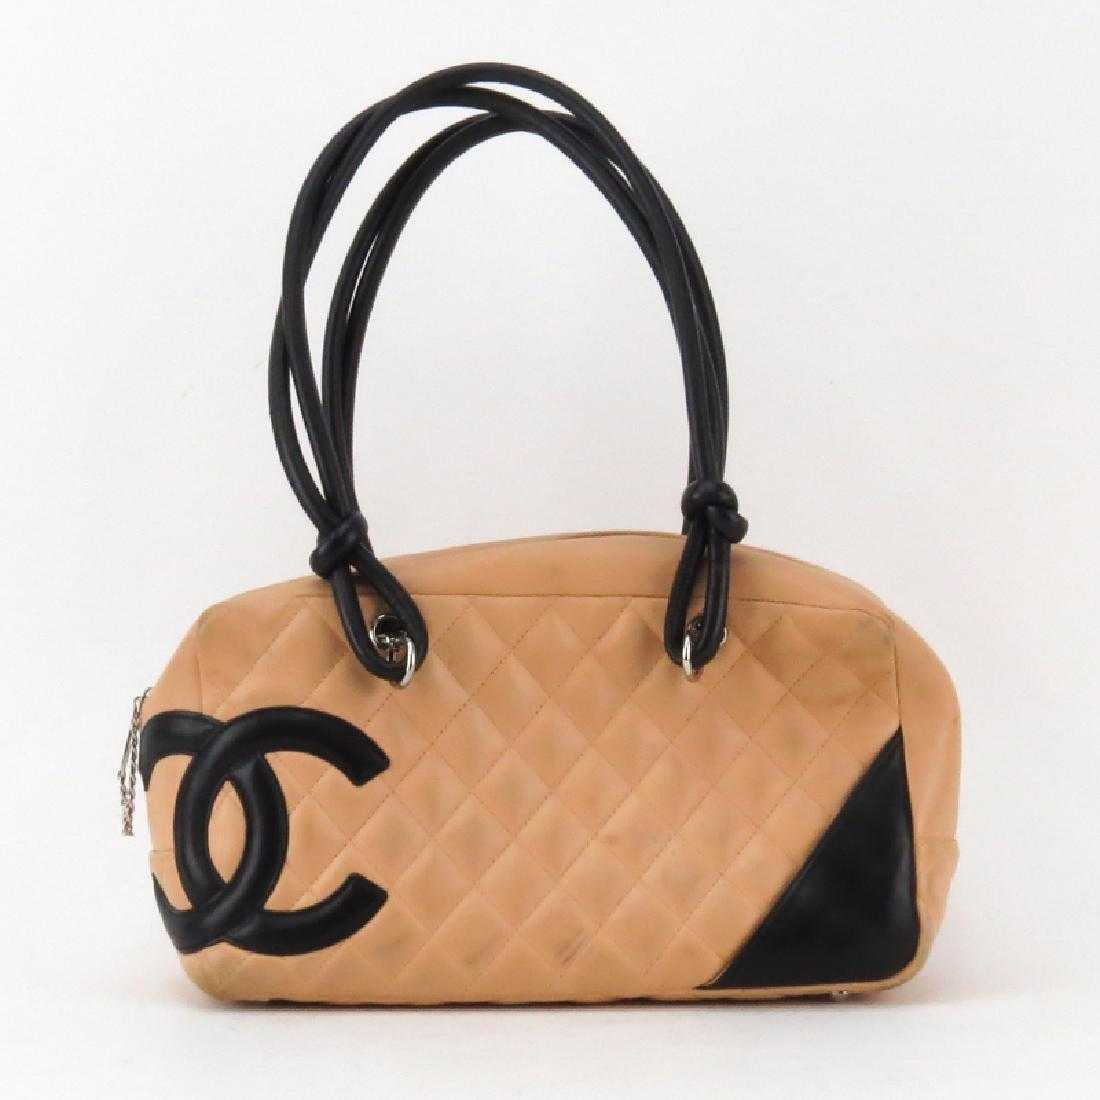 8e5a7a458379 Chanel Linge Cambon Quilted Leather Bowler Bag